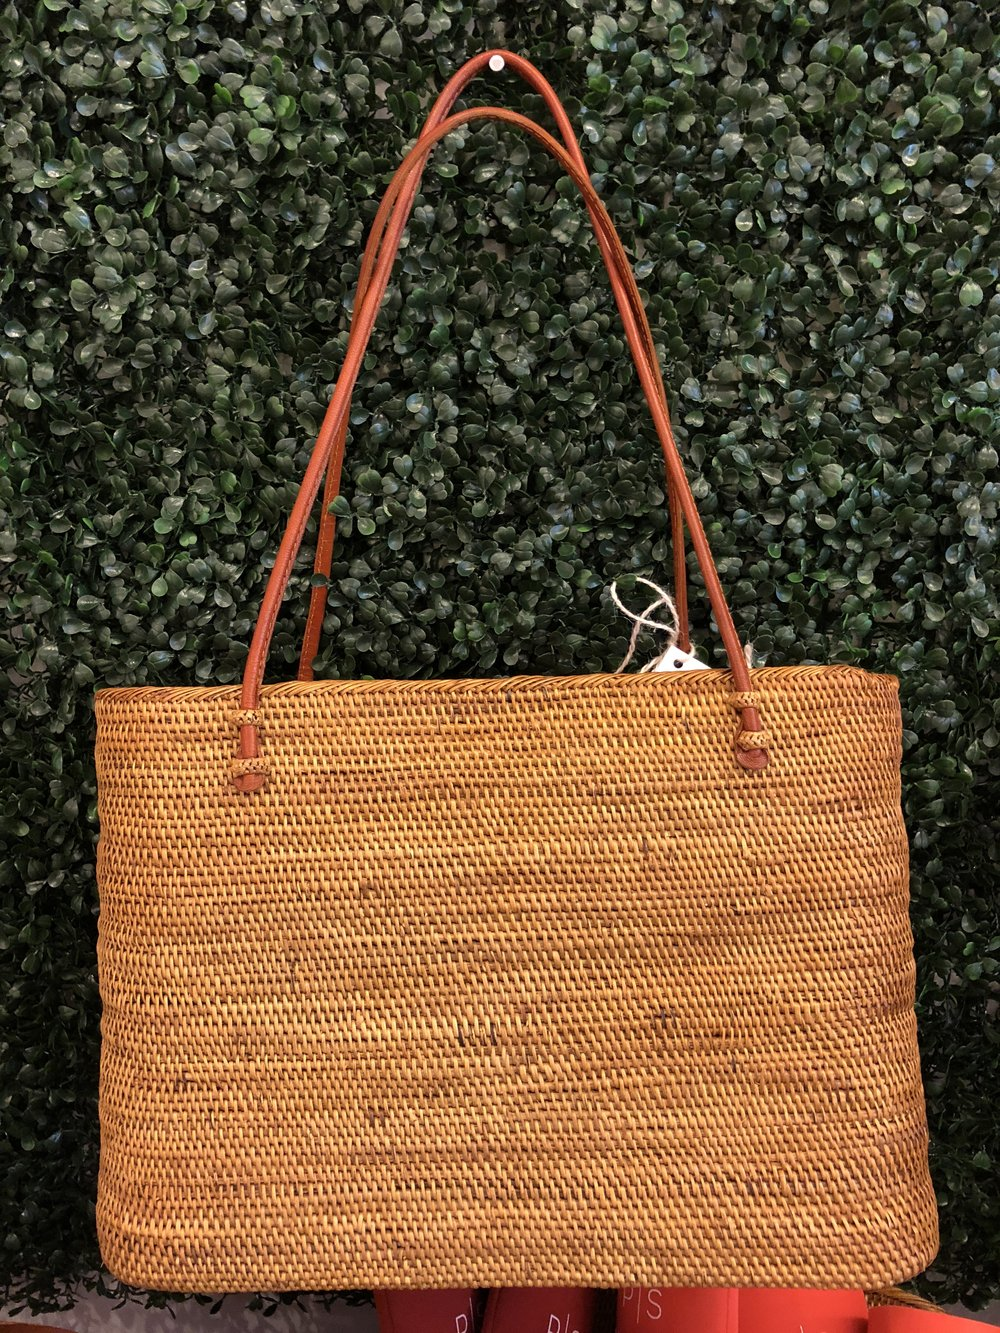 Tote by Poppy+Sage